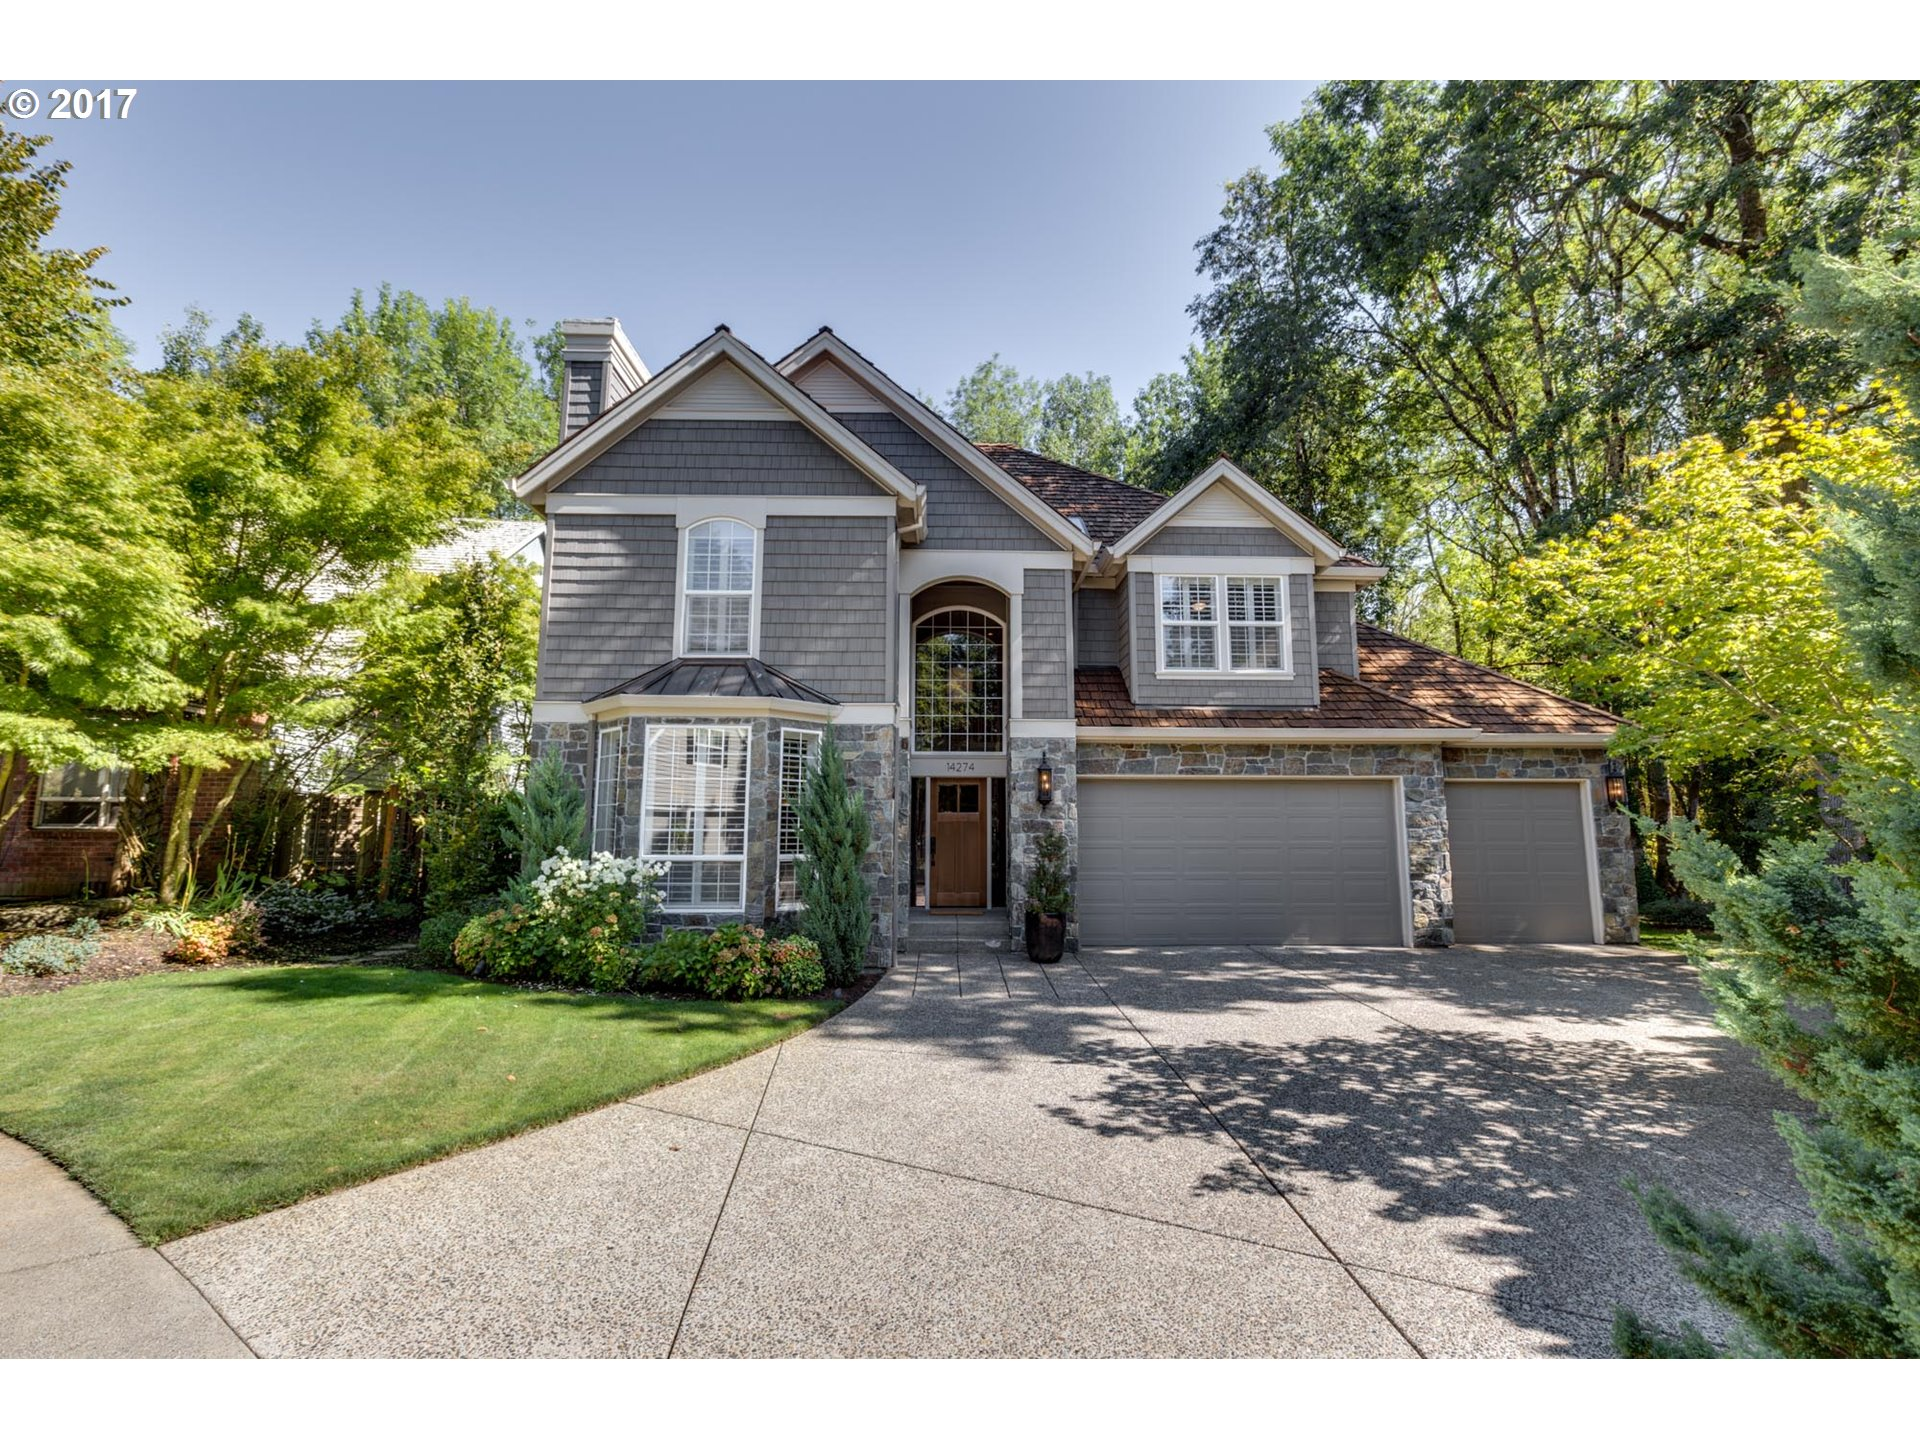 14274 KIMBERLY CIR, Lake Oswego, OR 97035